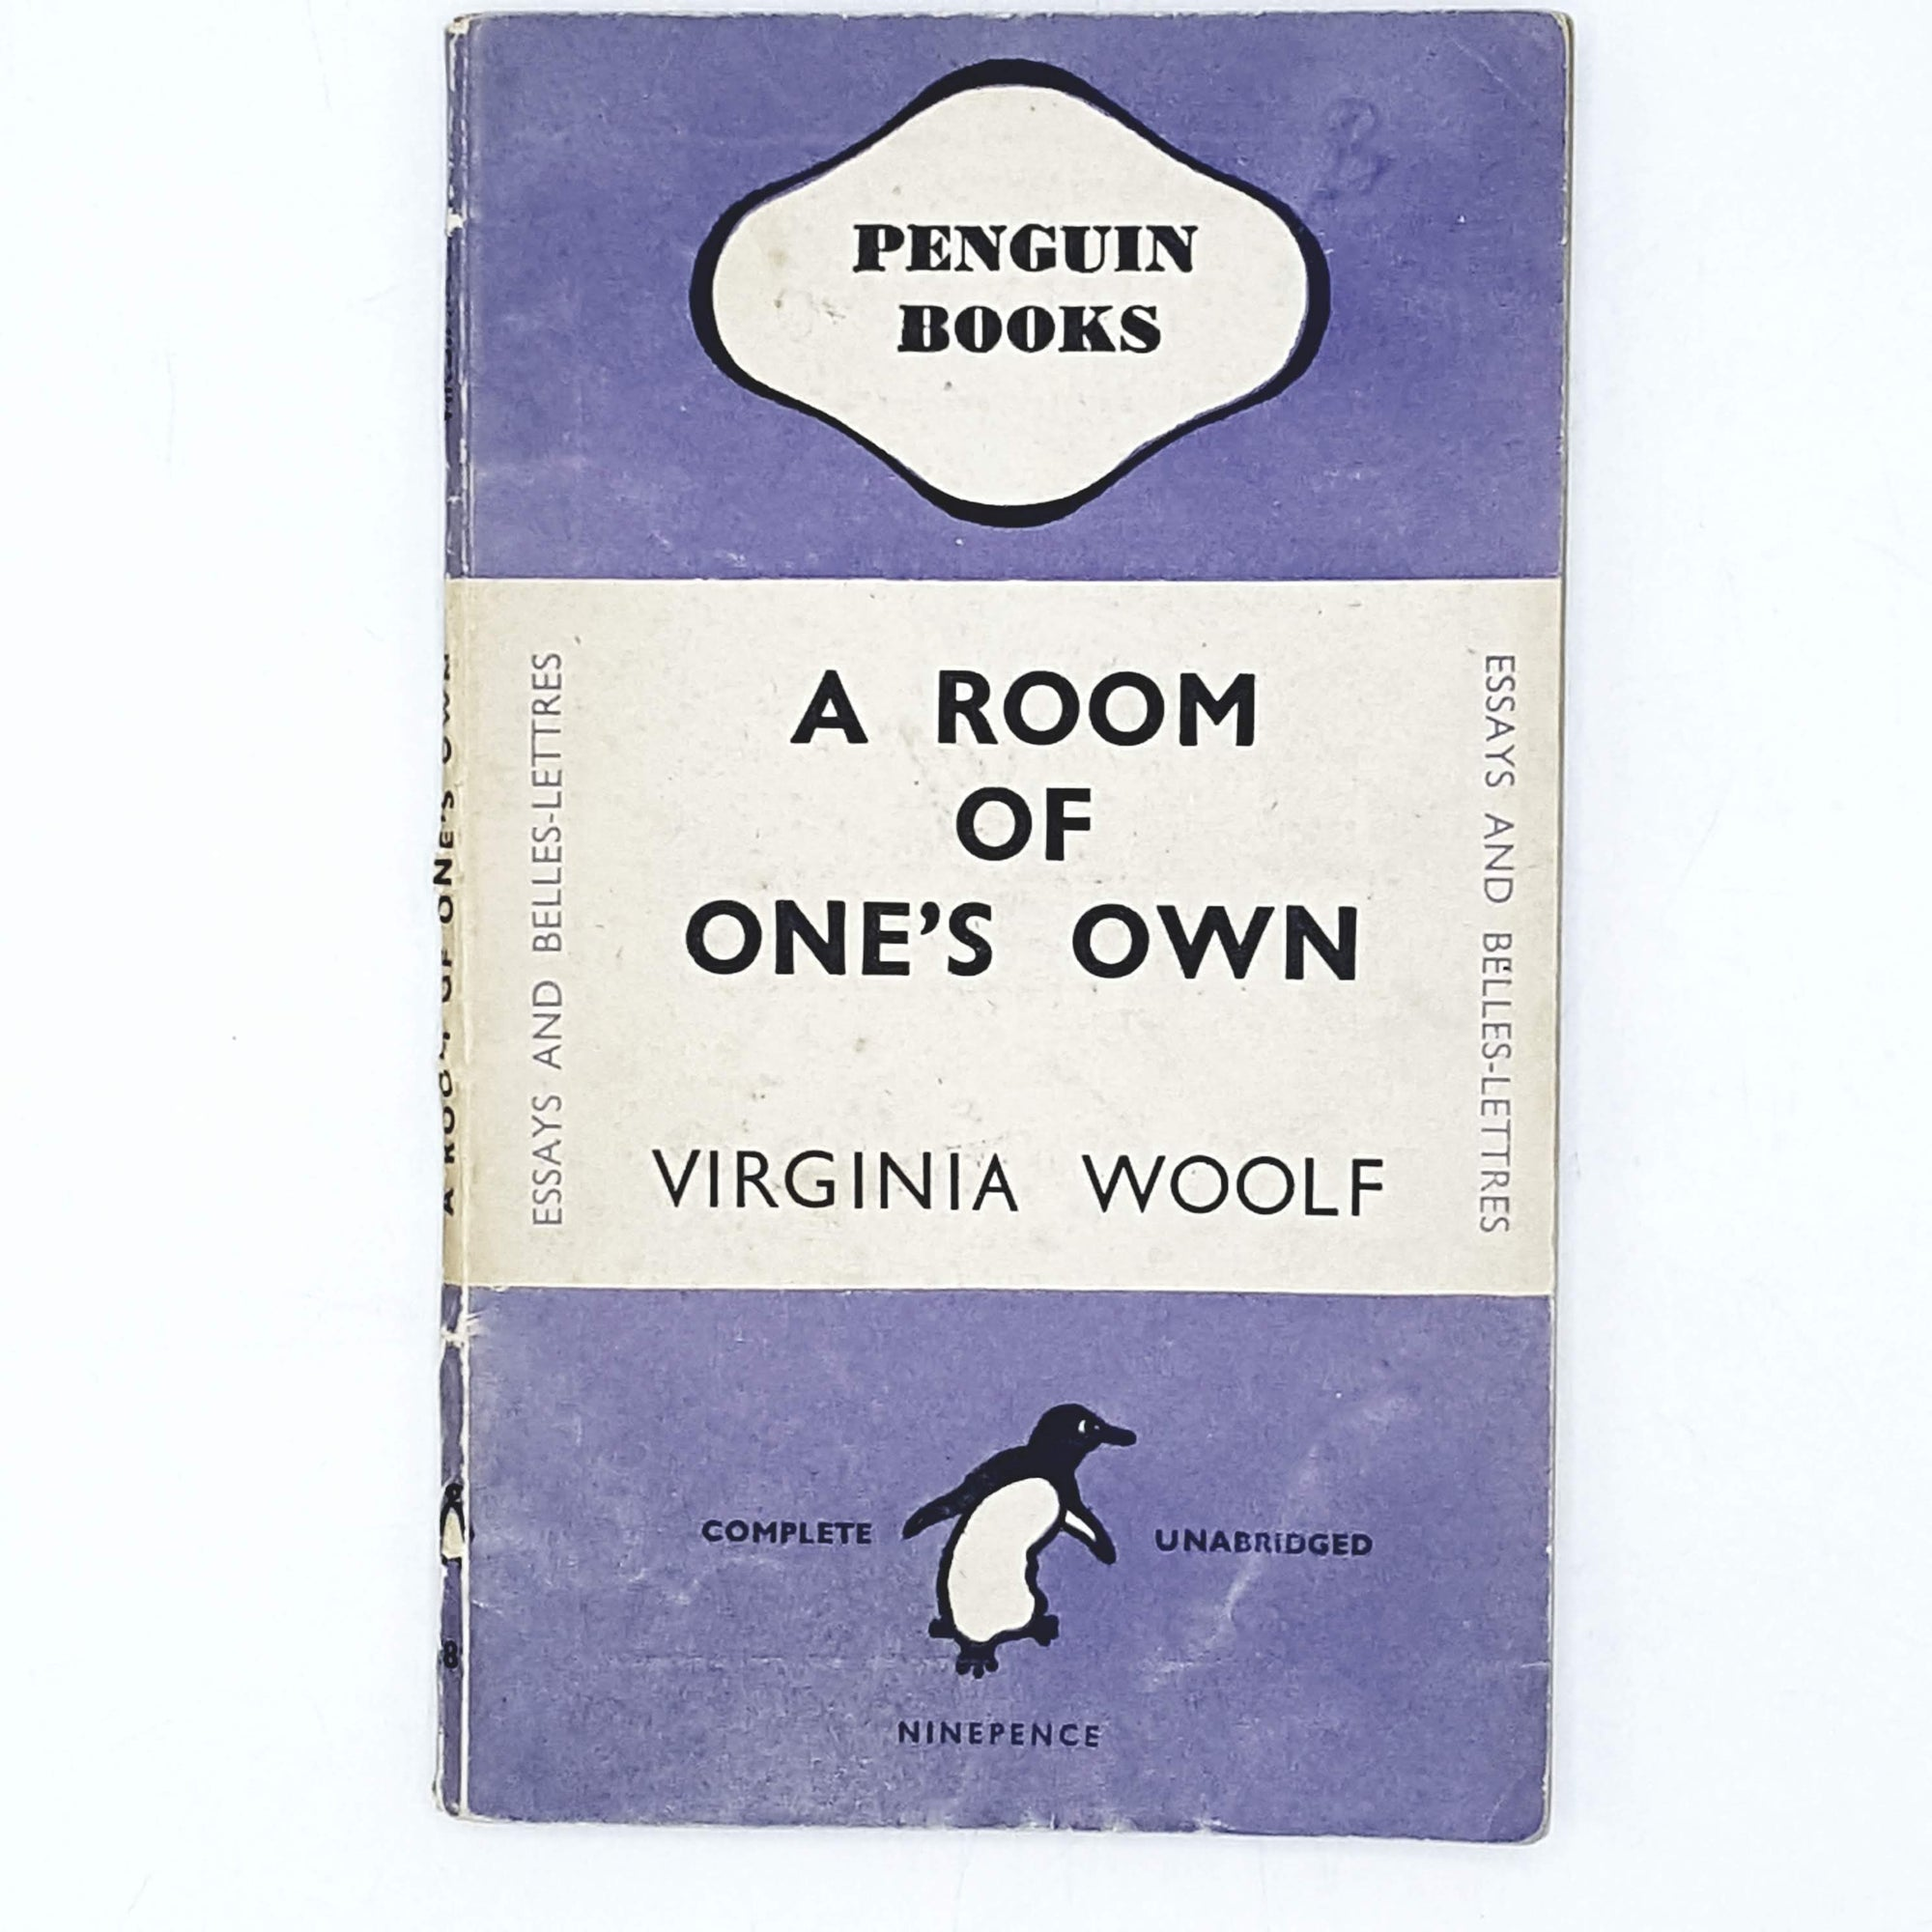 First Edition Virginia Woolf's A Room of One's Own 1945